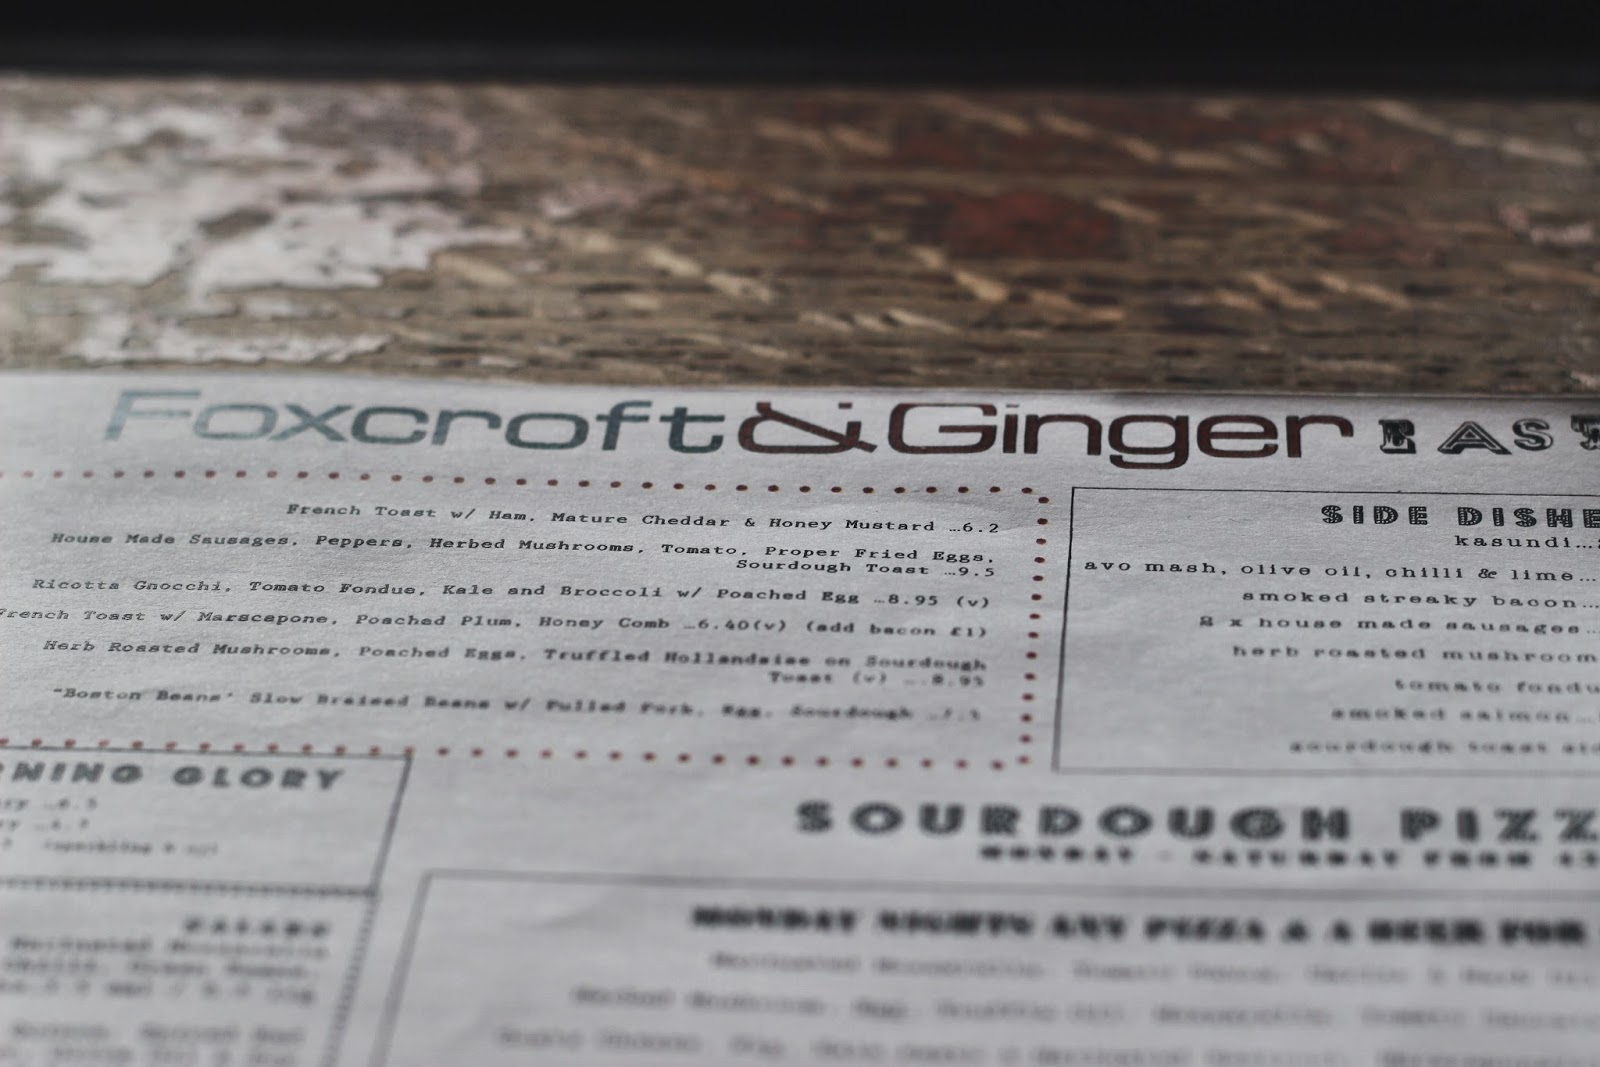 Foxcroft and Ginger Review